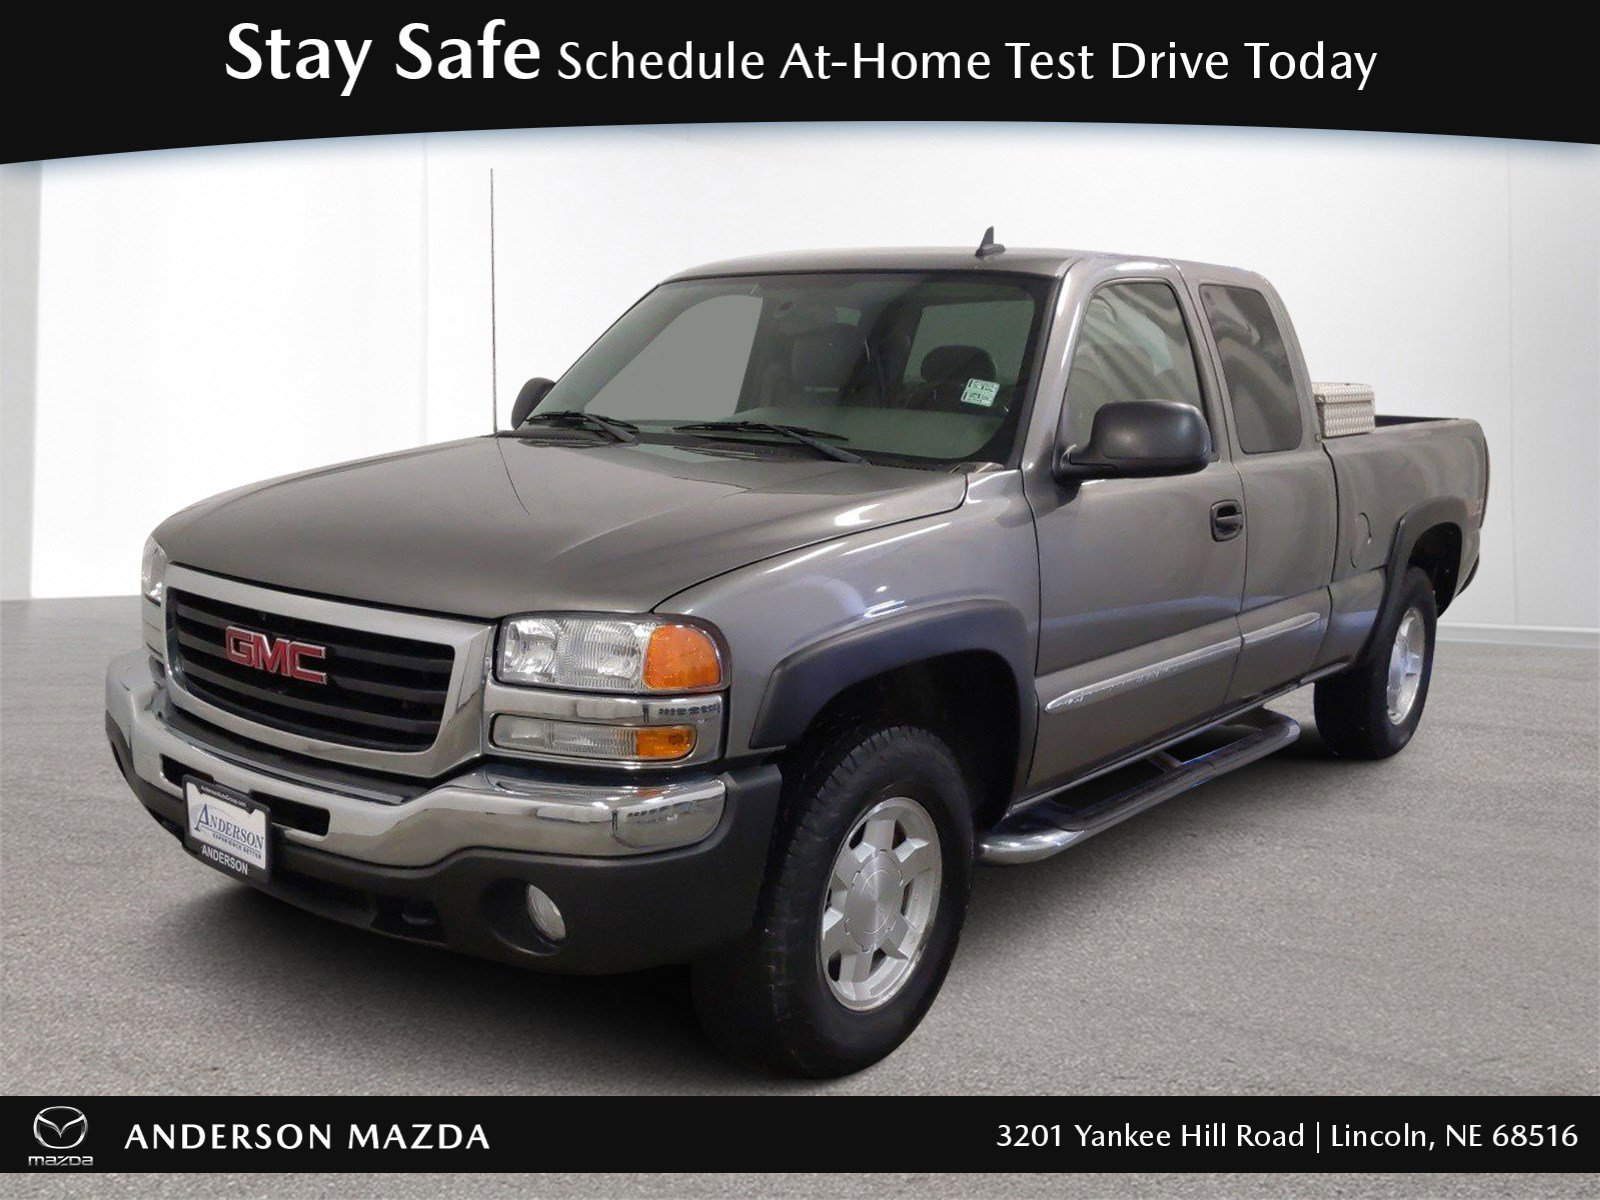 Used 2006 GMC Sierra 1500 SLT Extended Cab Pickup for sale in Lincoln NE